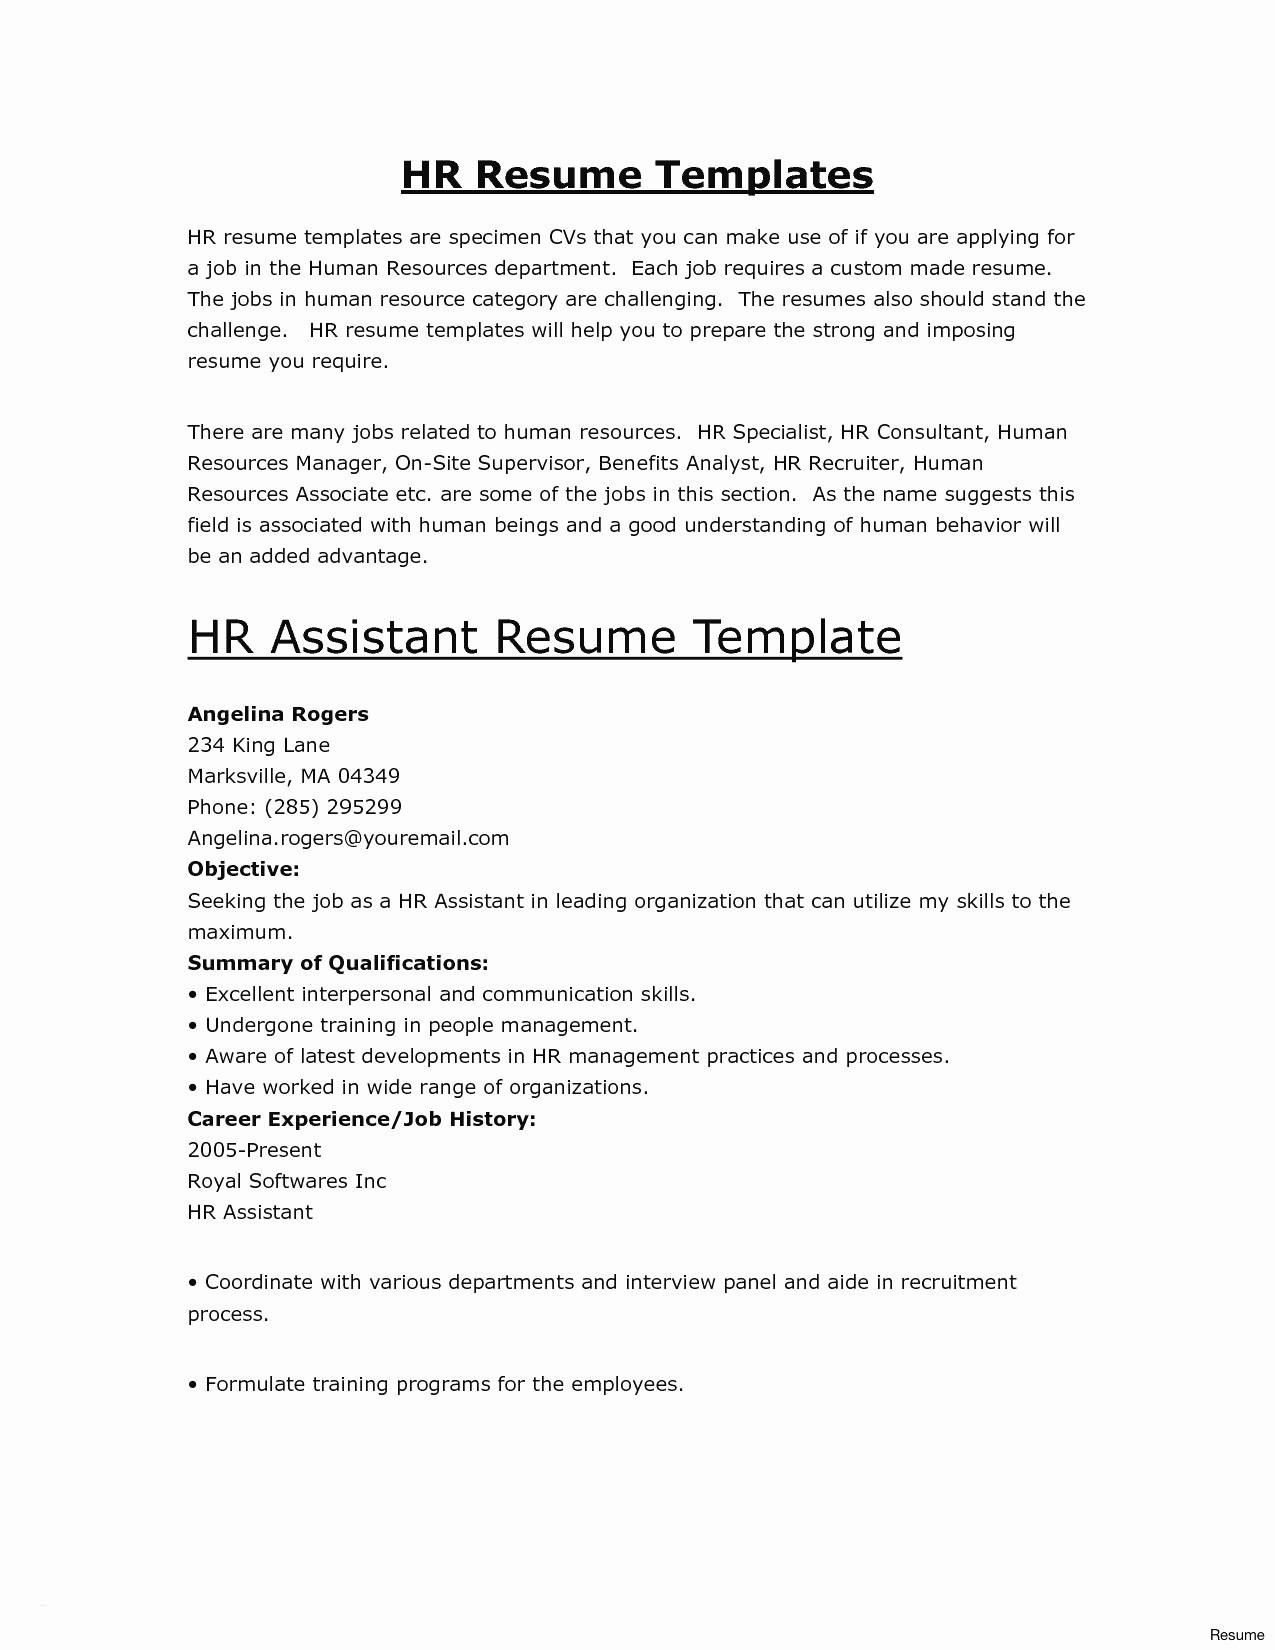 Self Employment Letter Template - How Do I Write A Resume Best Self Employed Resume New Luxury